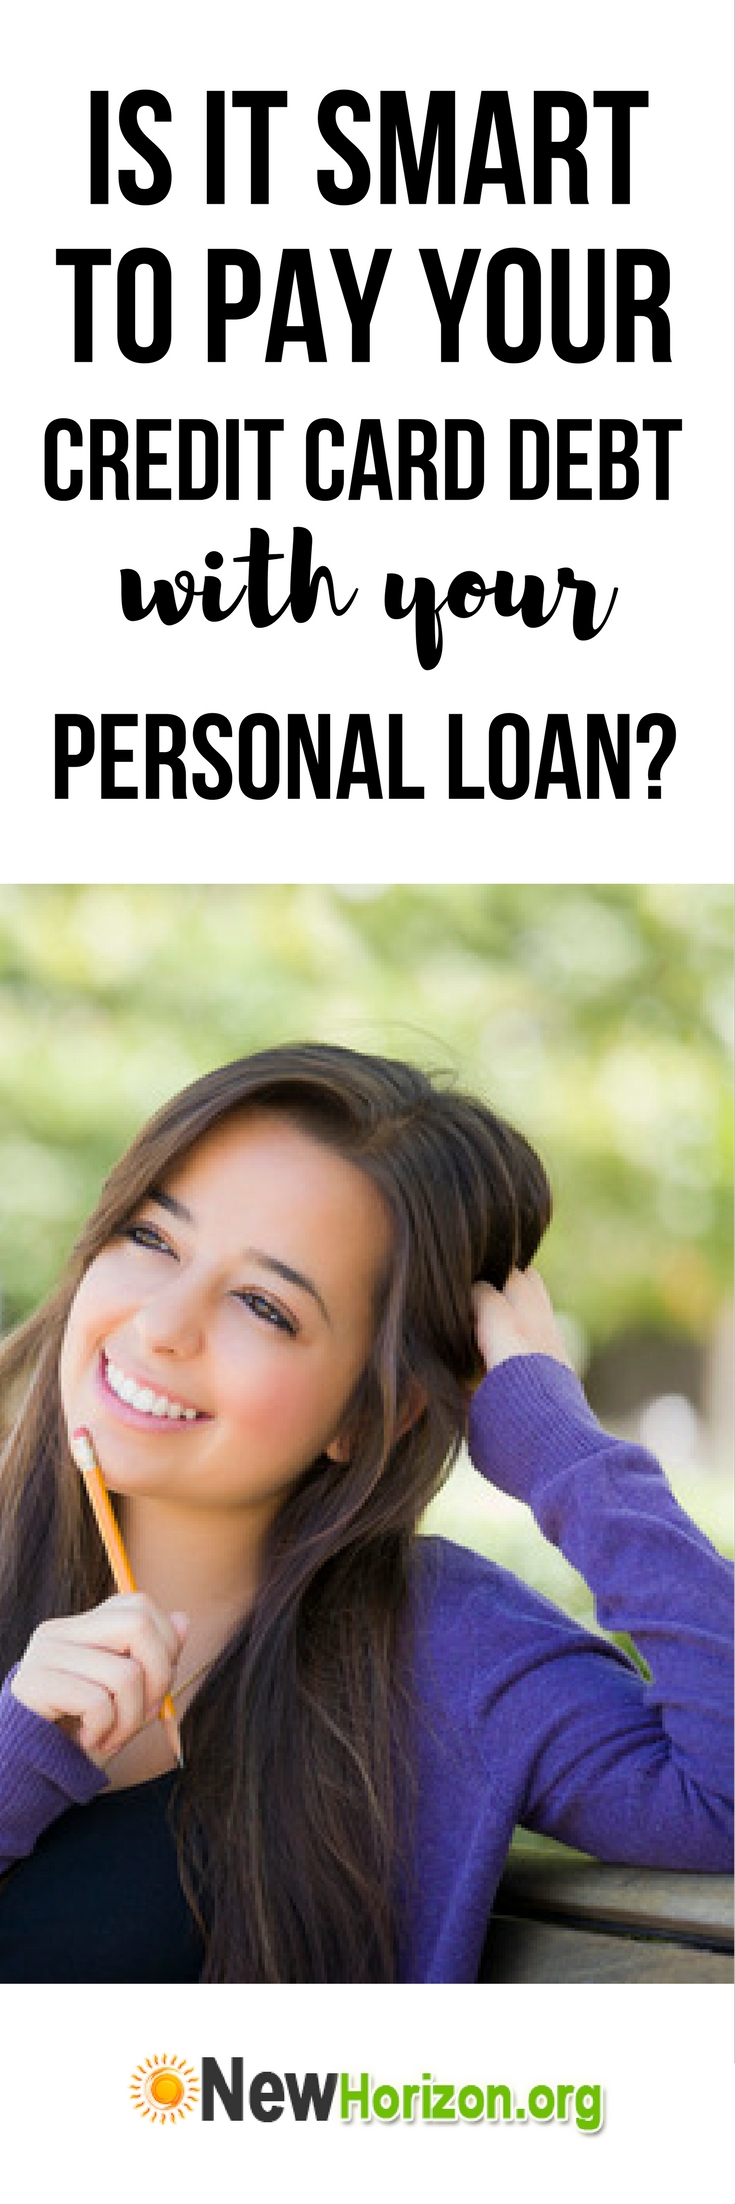 Is It Smart To Pay Your Credit Card Debt With Your Personal Loan Personal Loans Credit Cards Debt Debt